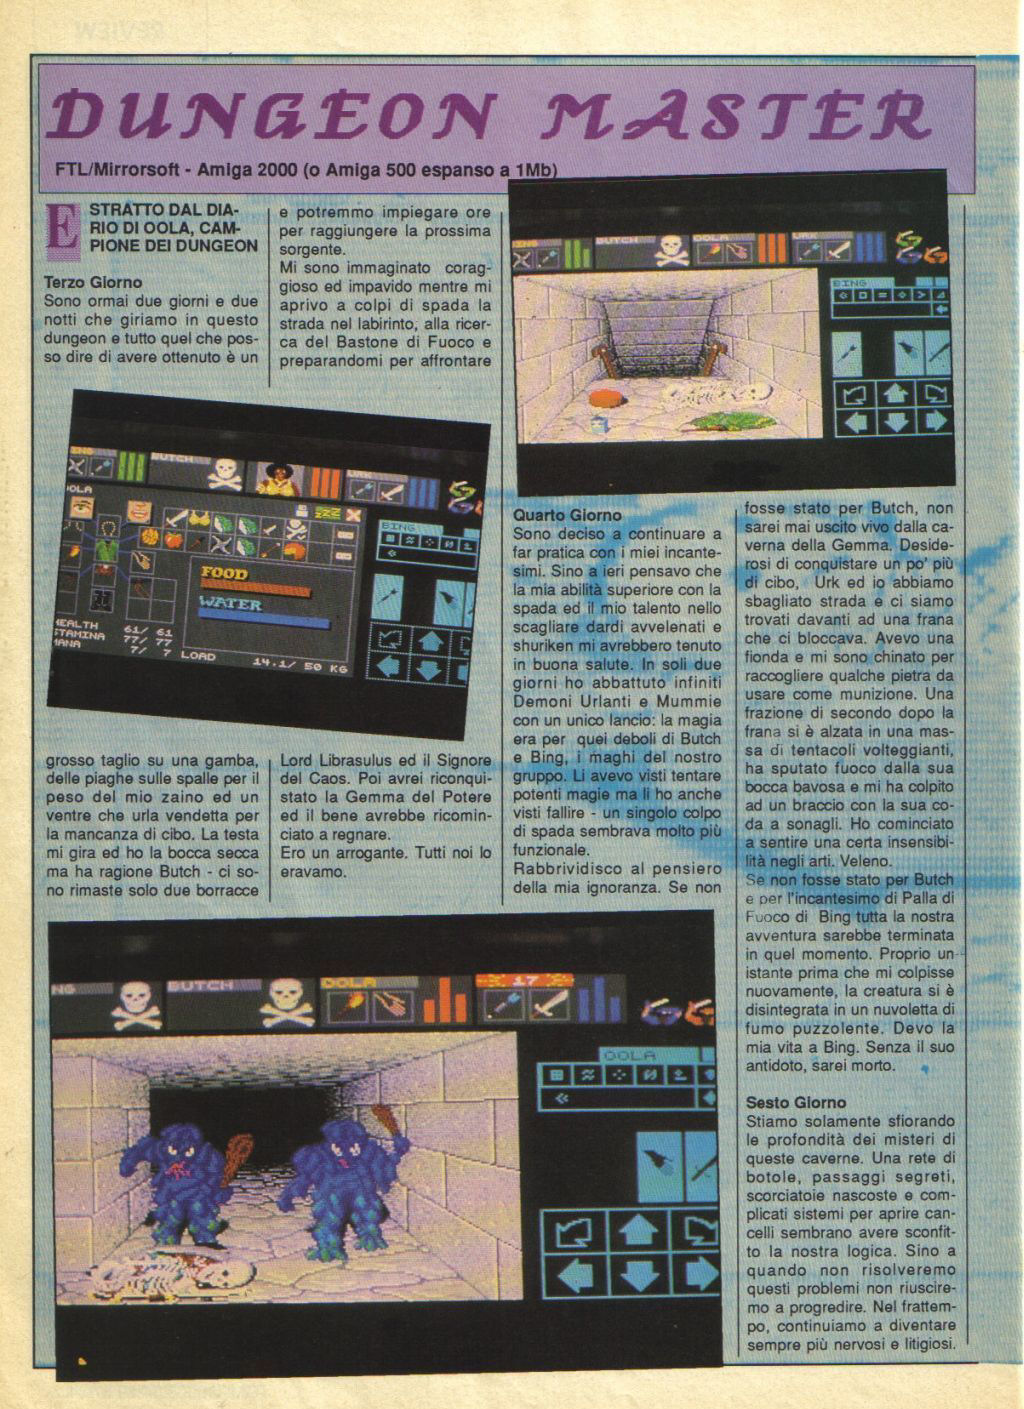 Dungeon Master for Amiga Review published in Italian magazine 'The Game Machine', Issue #8, April 1989, Page 38